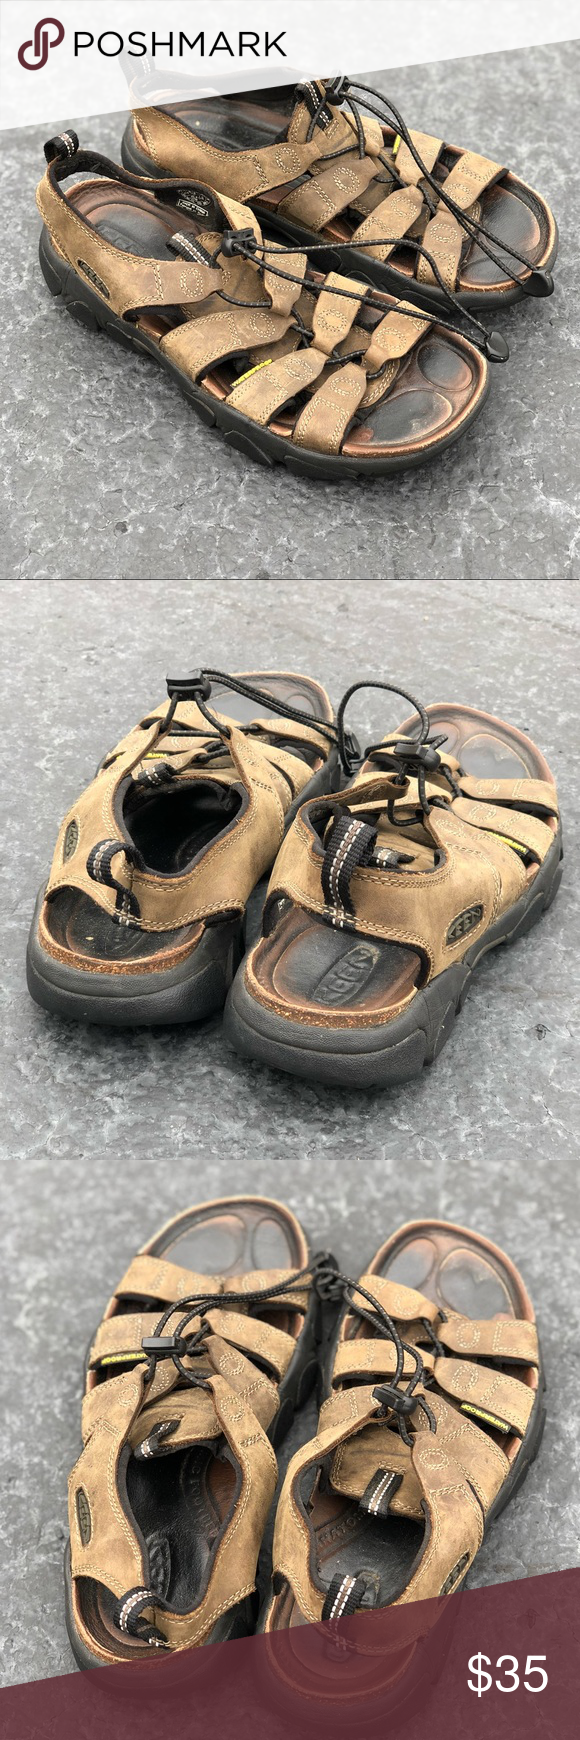 25e136bc7784 Keen Daytona Leather Waterproof Sandals Keen Daytona Sandals in Mens size  8.5. Great condition!